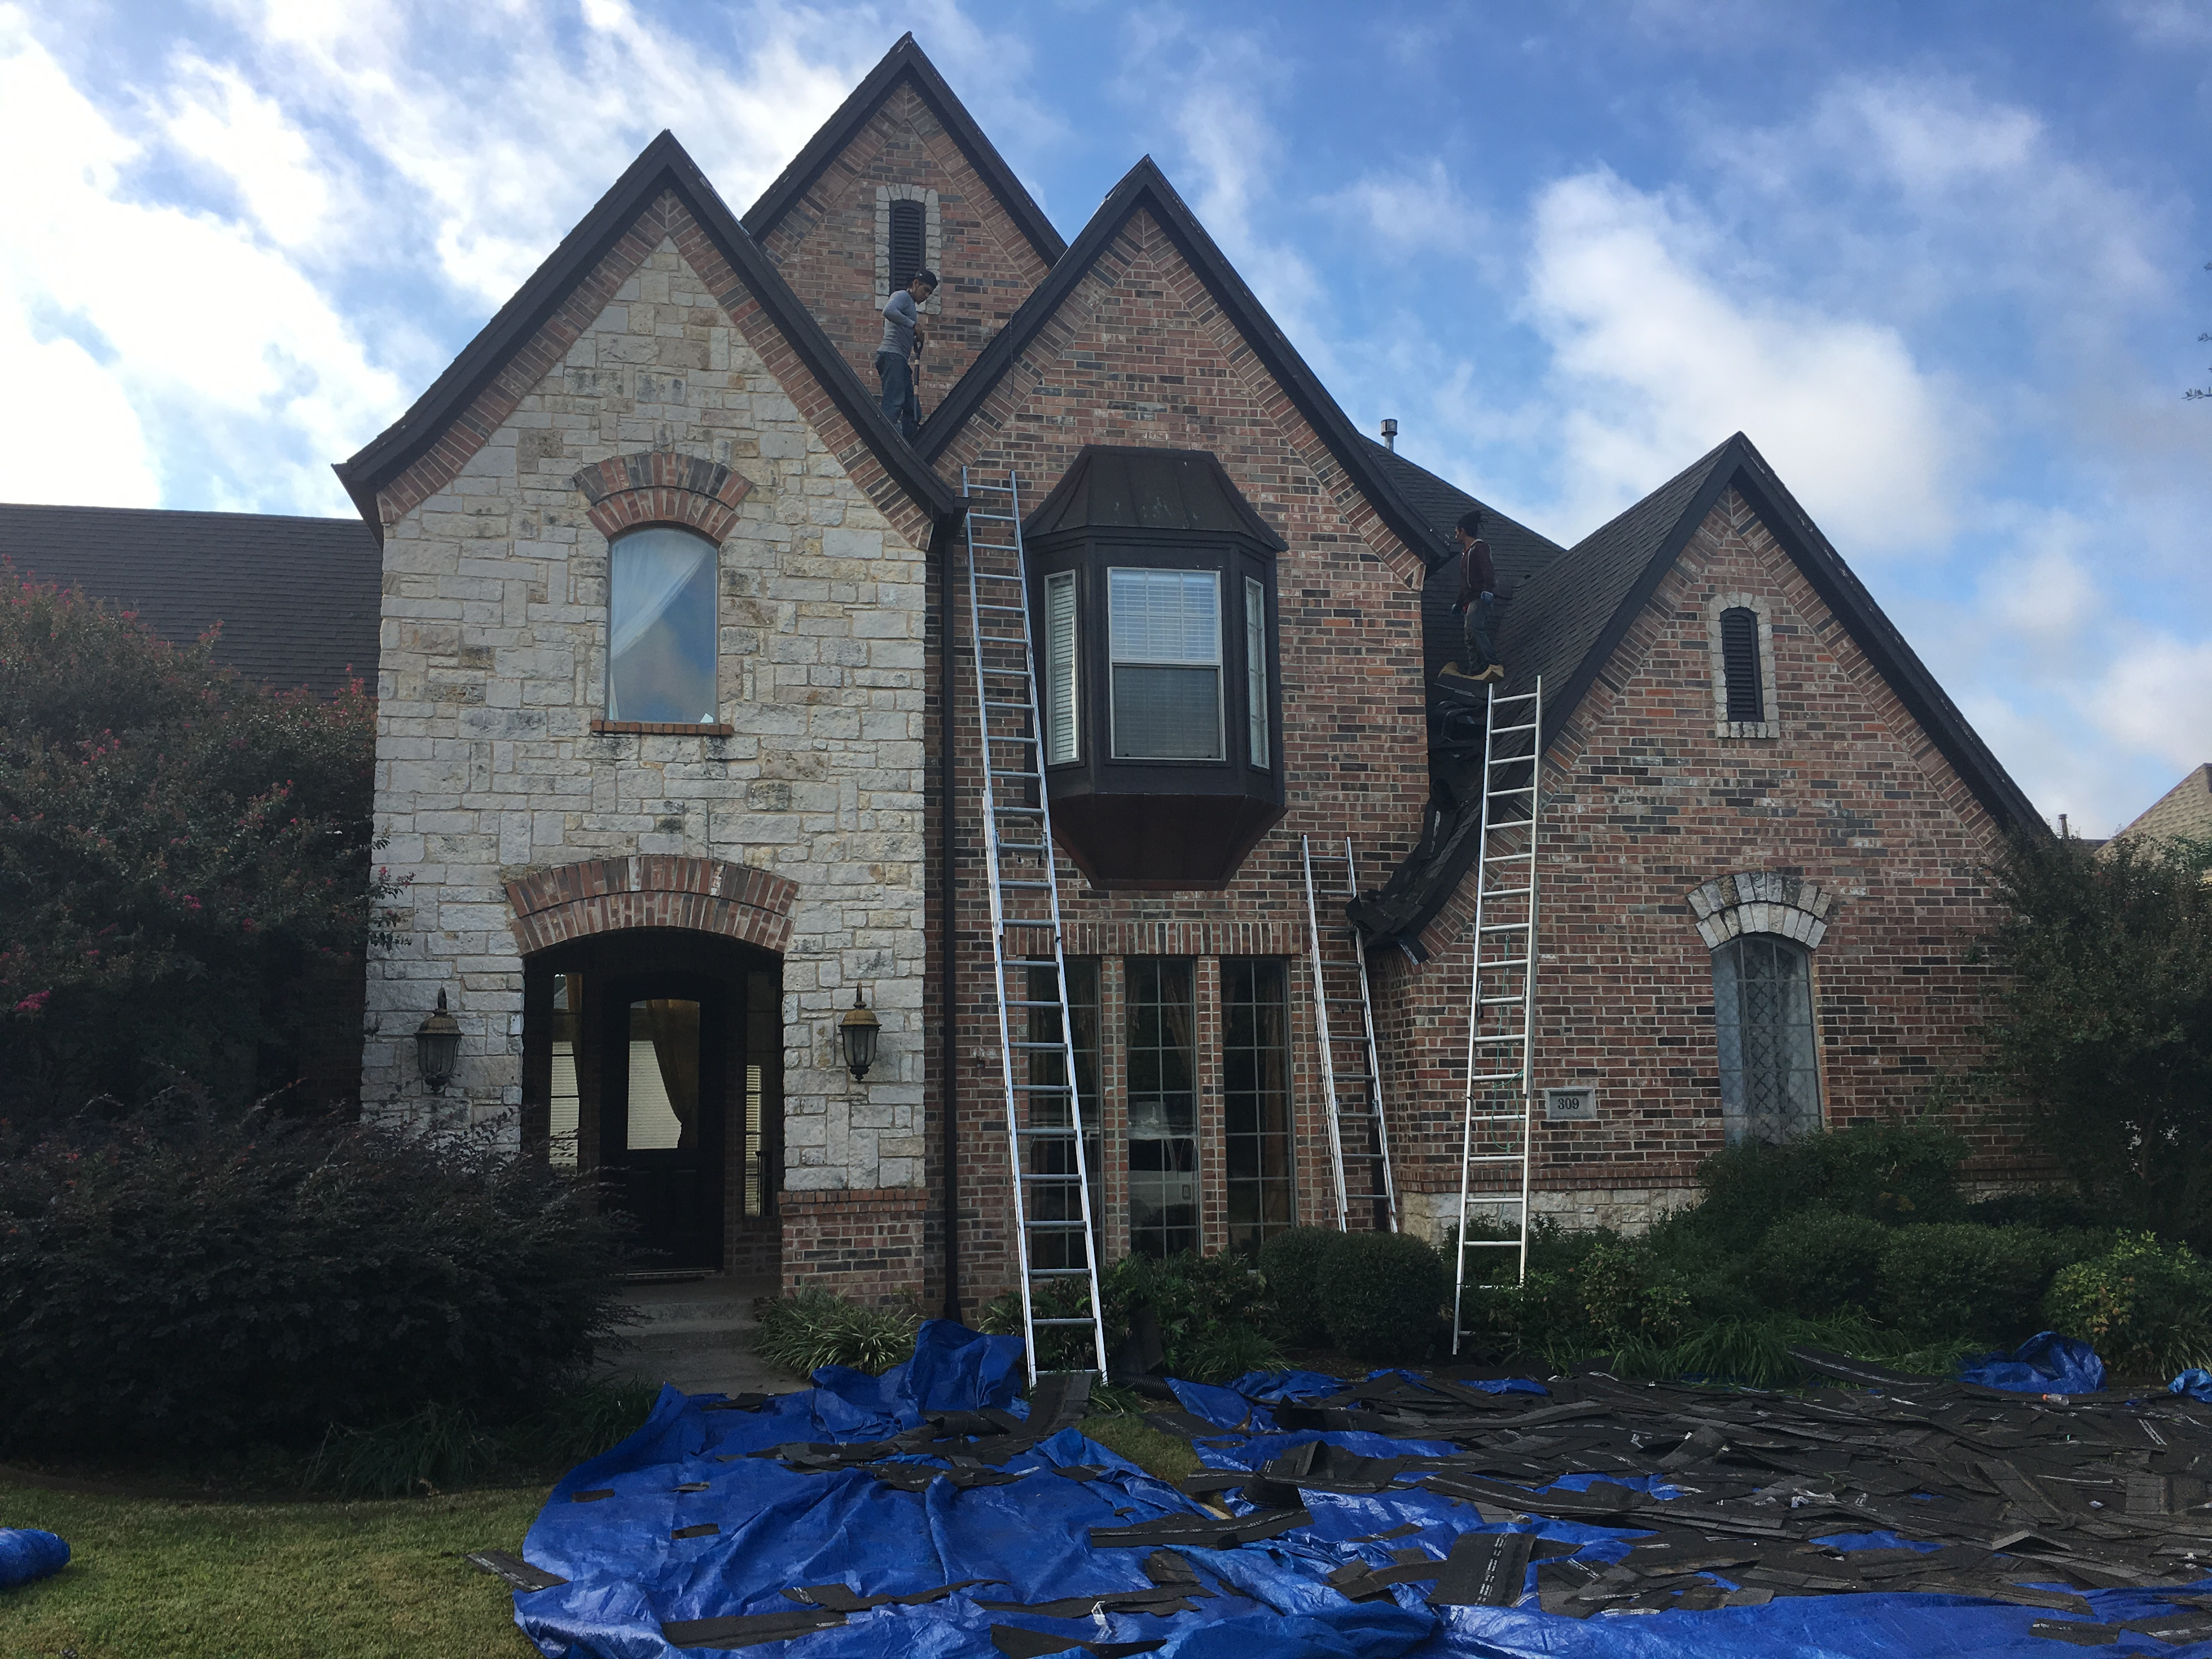 Rci Roofing Construction Serving Dallas Fort Worth